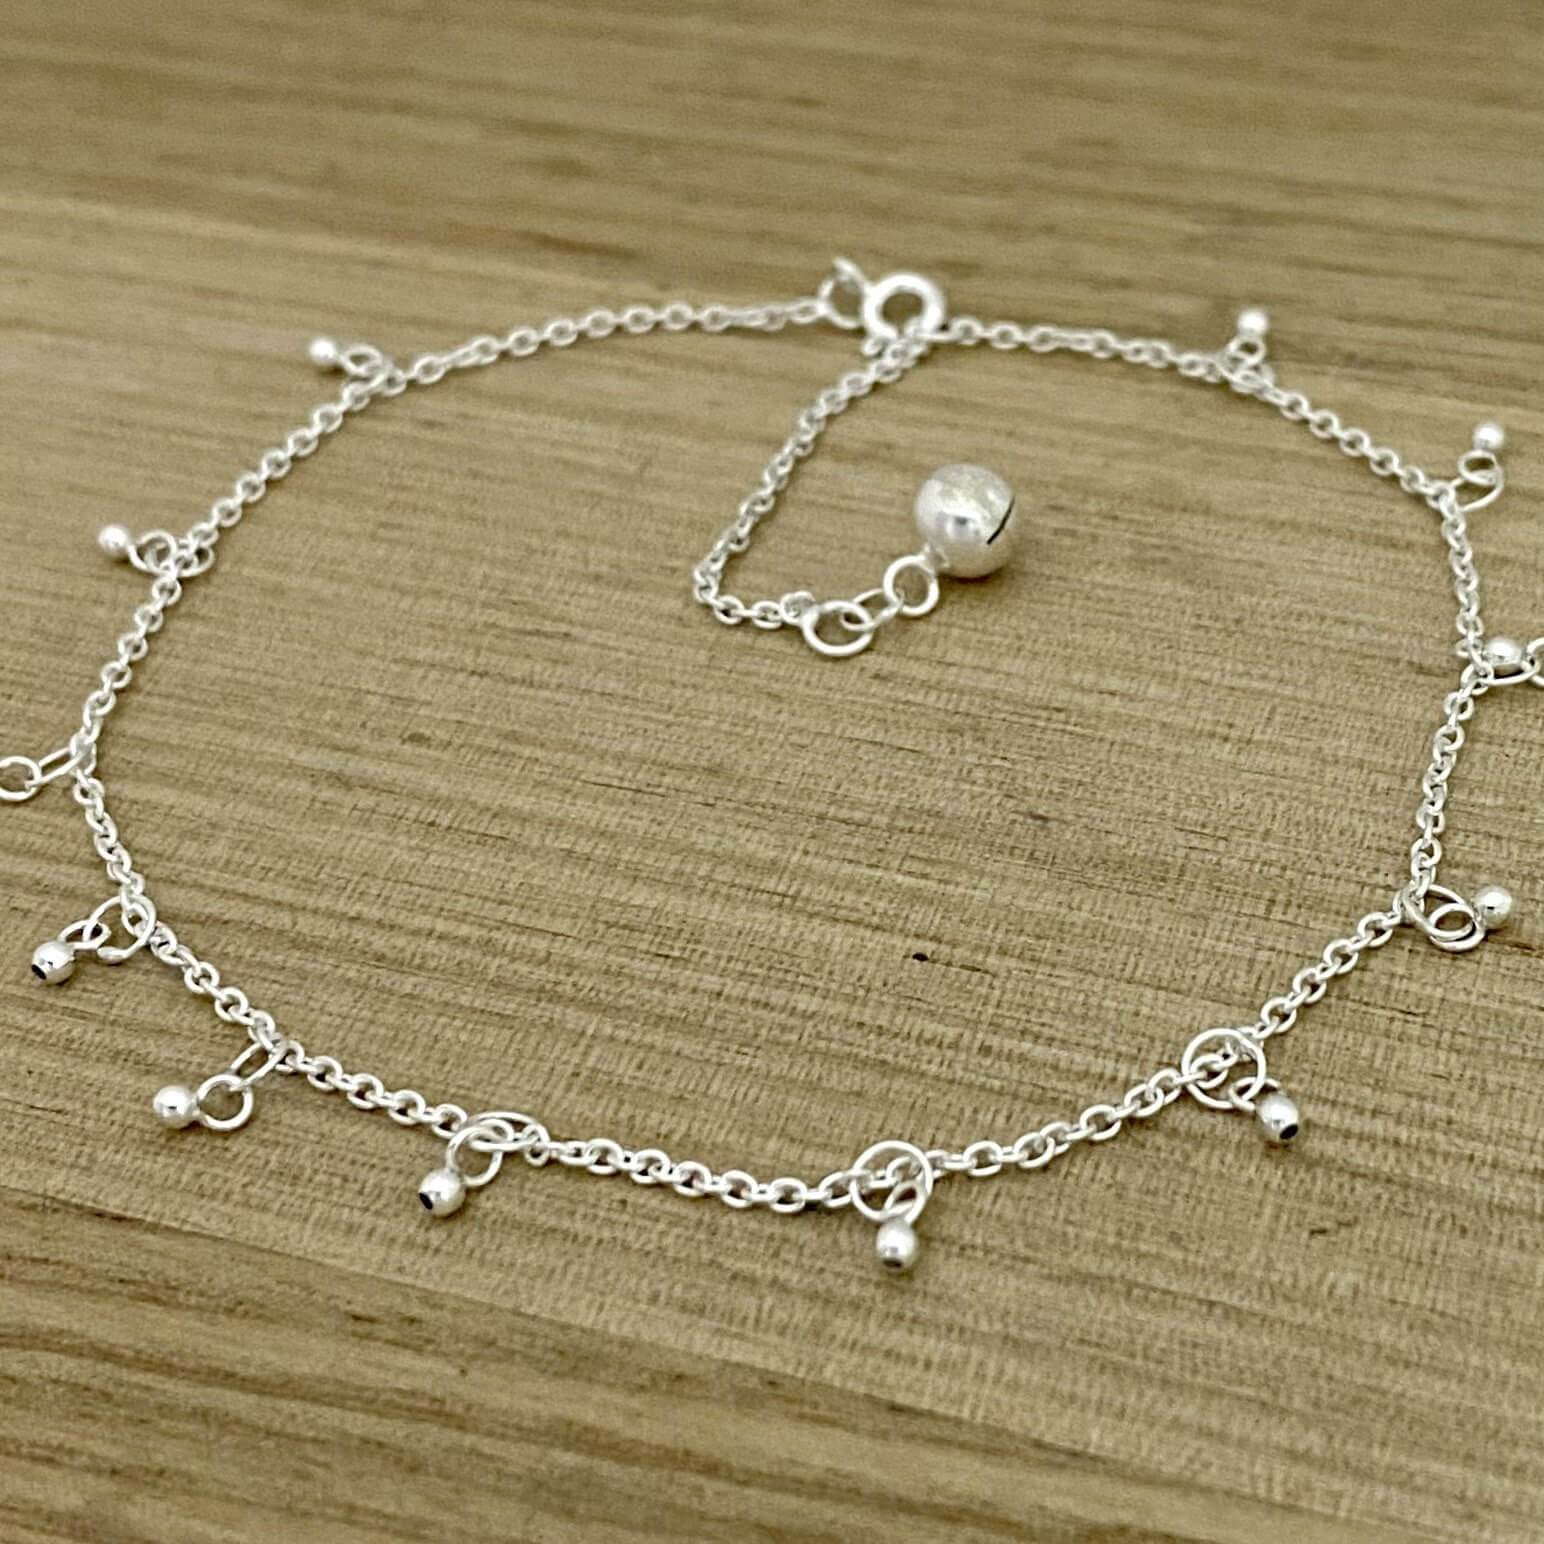 Laihas Bright Bell Sterling Silver Boho Anklet - Laihas Bohemian Dreaming